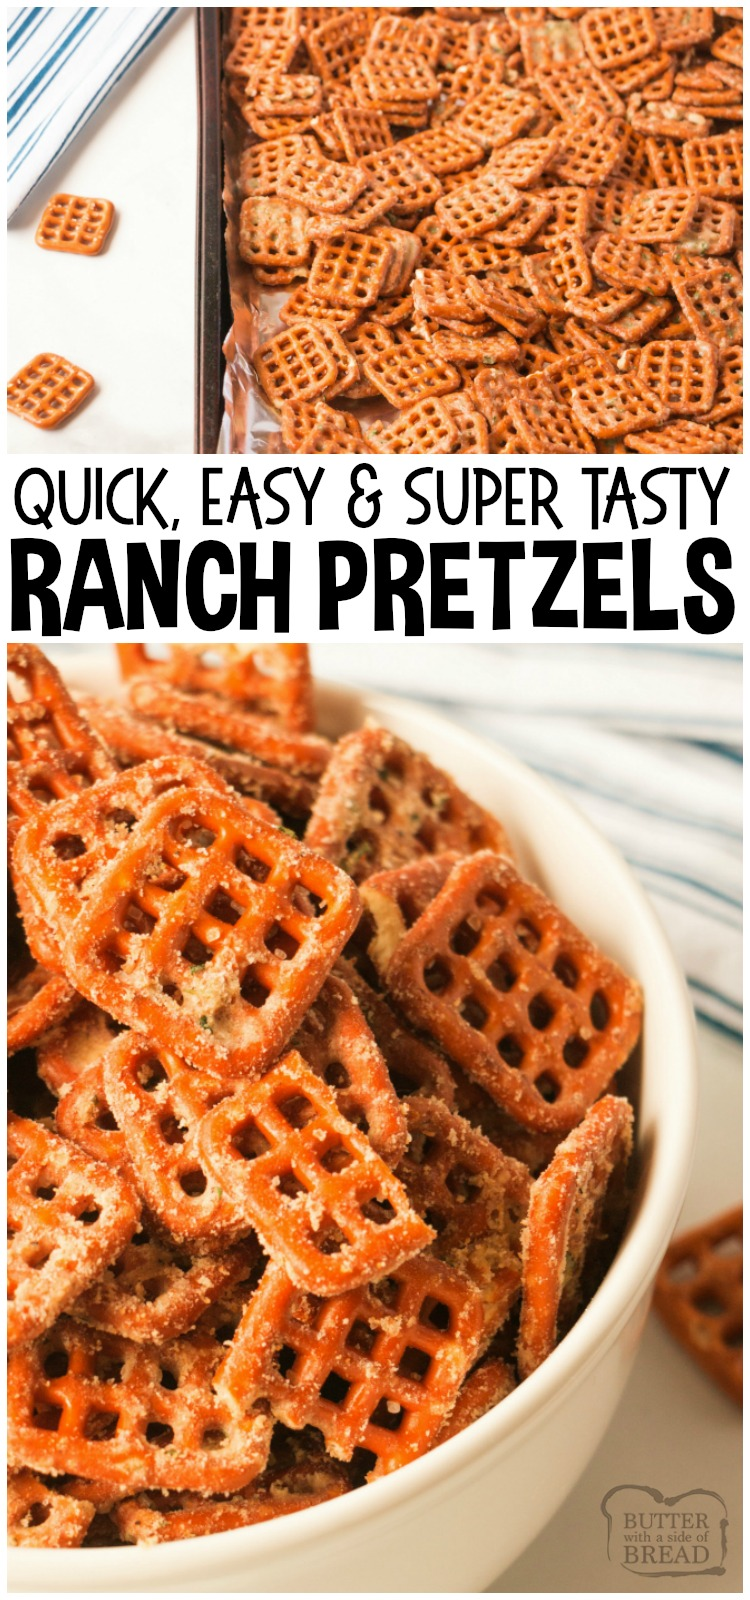 Easy Ranch Pretzels made with just a few ingredients and so insanely delicious, everyone asks for this recipe! Simple appetizer to make and perfect for game day, a party or any get-together! #ranch #pretzels #snacks #food #appetizers #recipe from BUTTER WITH A SIDE OF BREAD